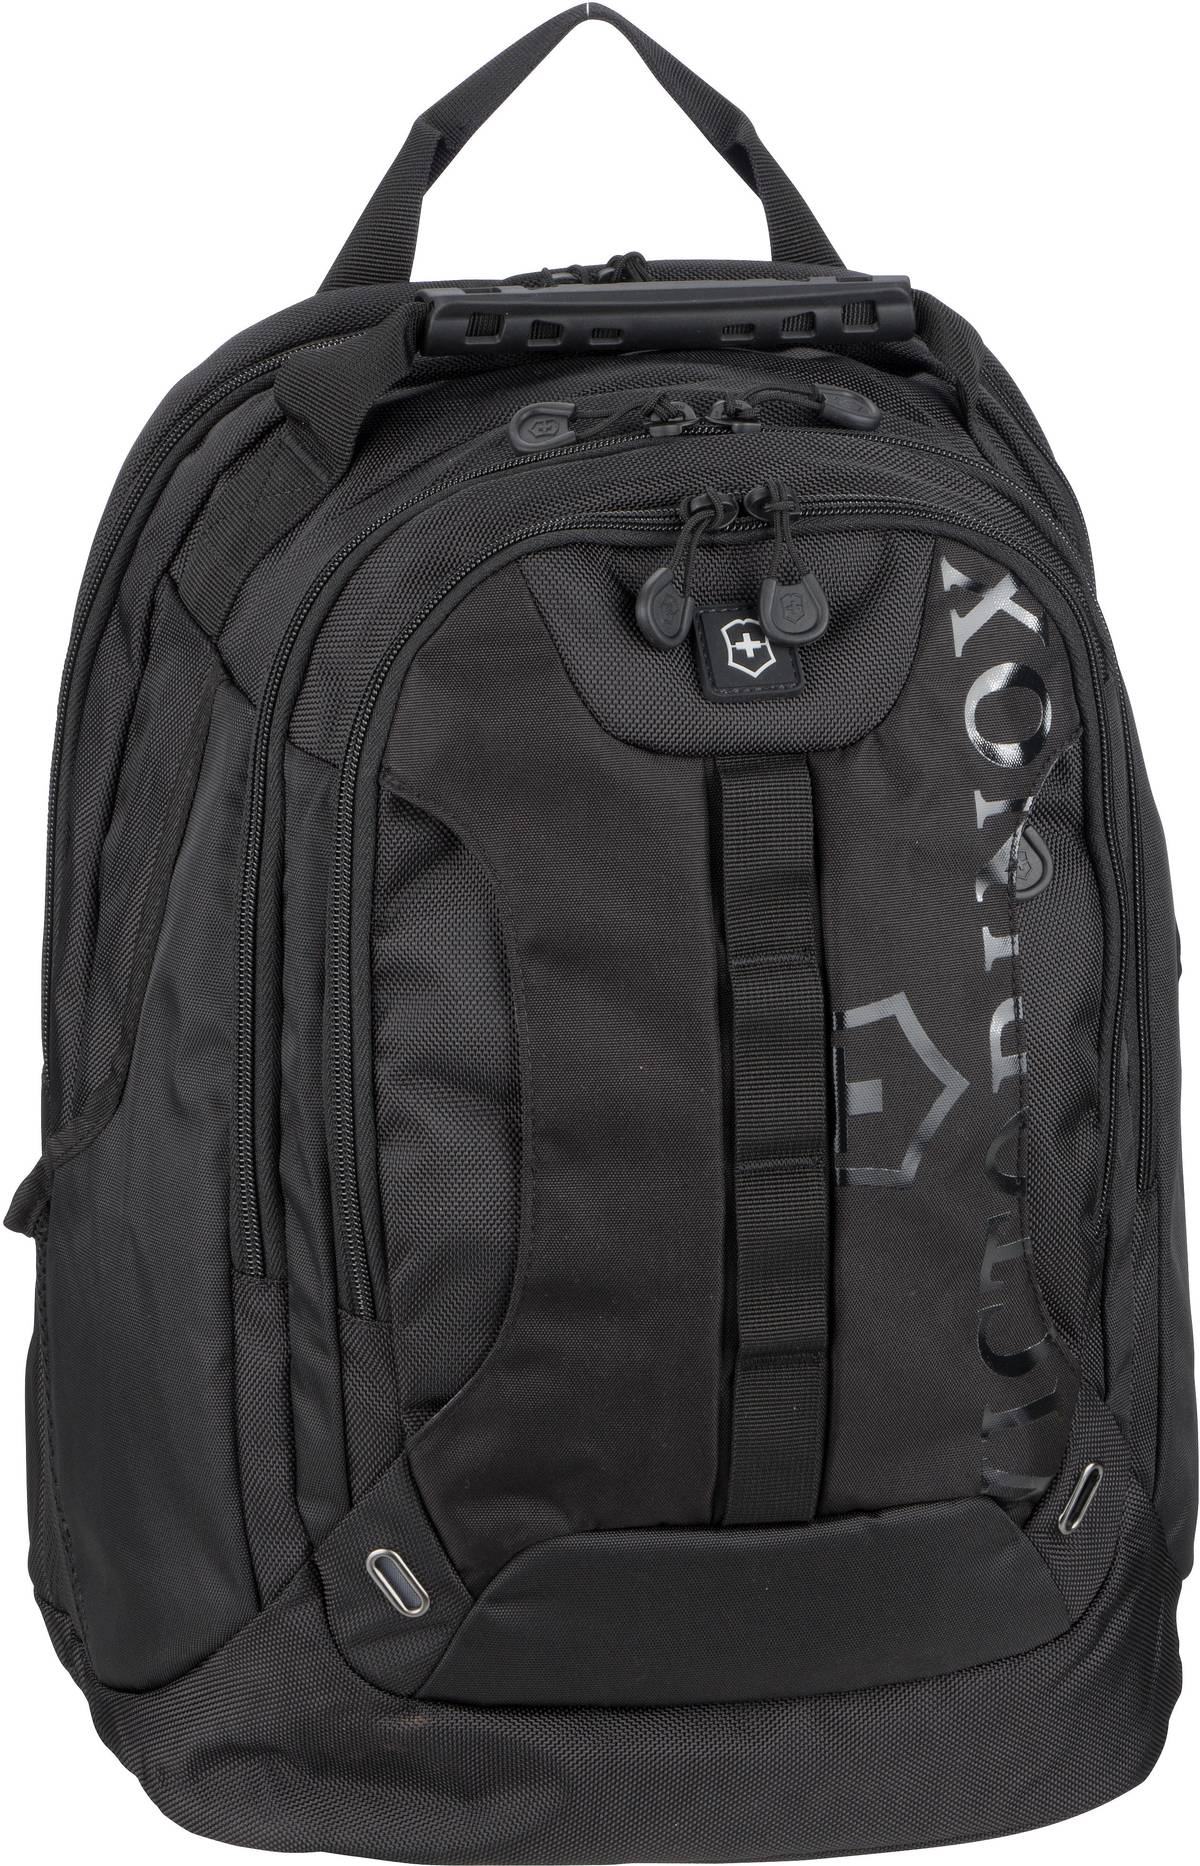 Laptoprucksack Vx Sport Trooper Black (28 Liter)